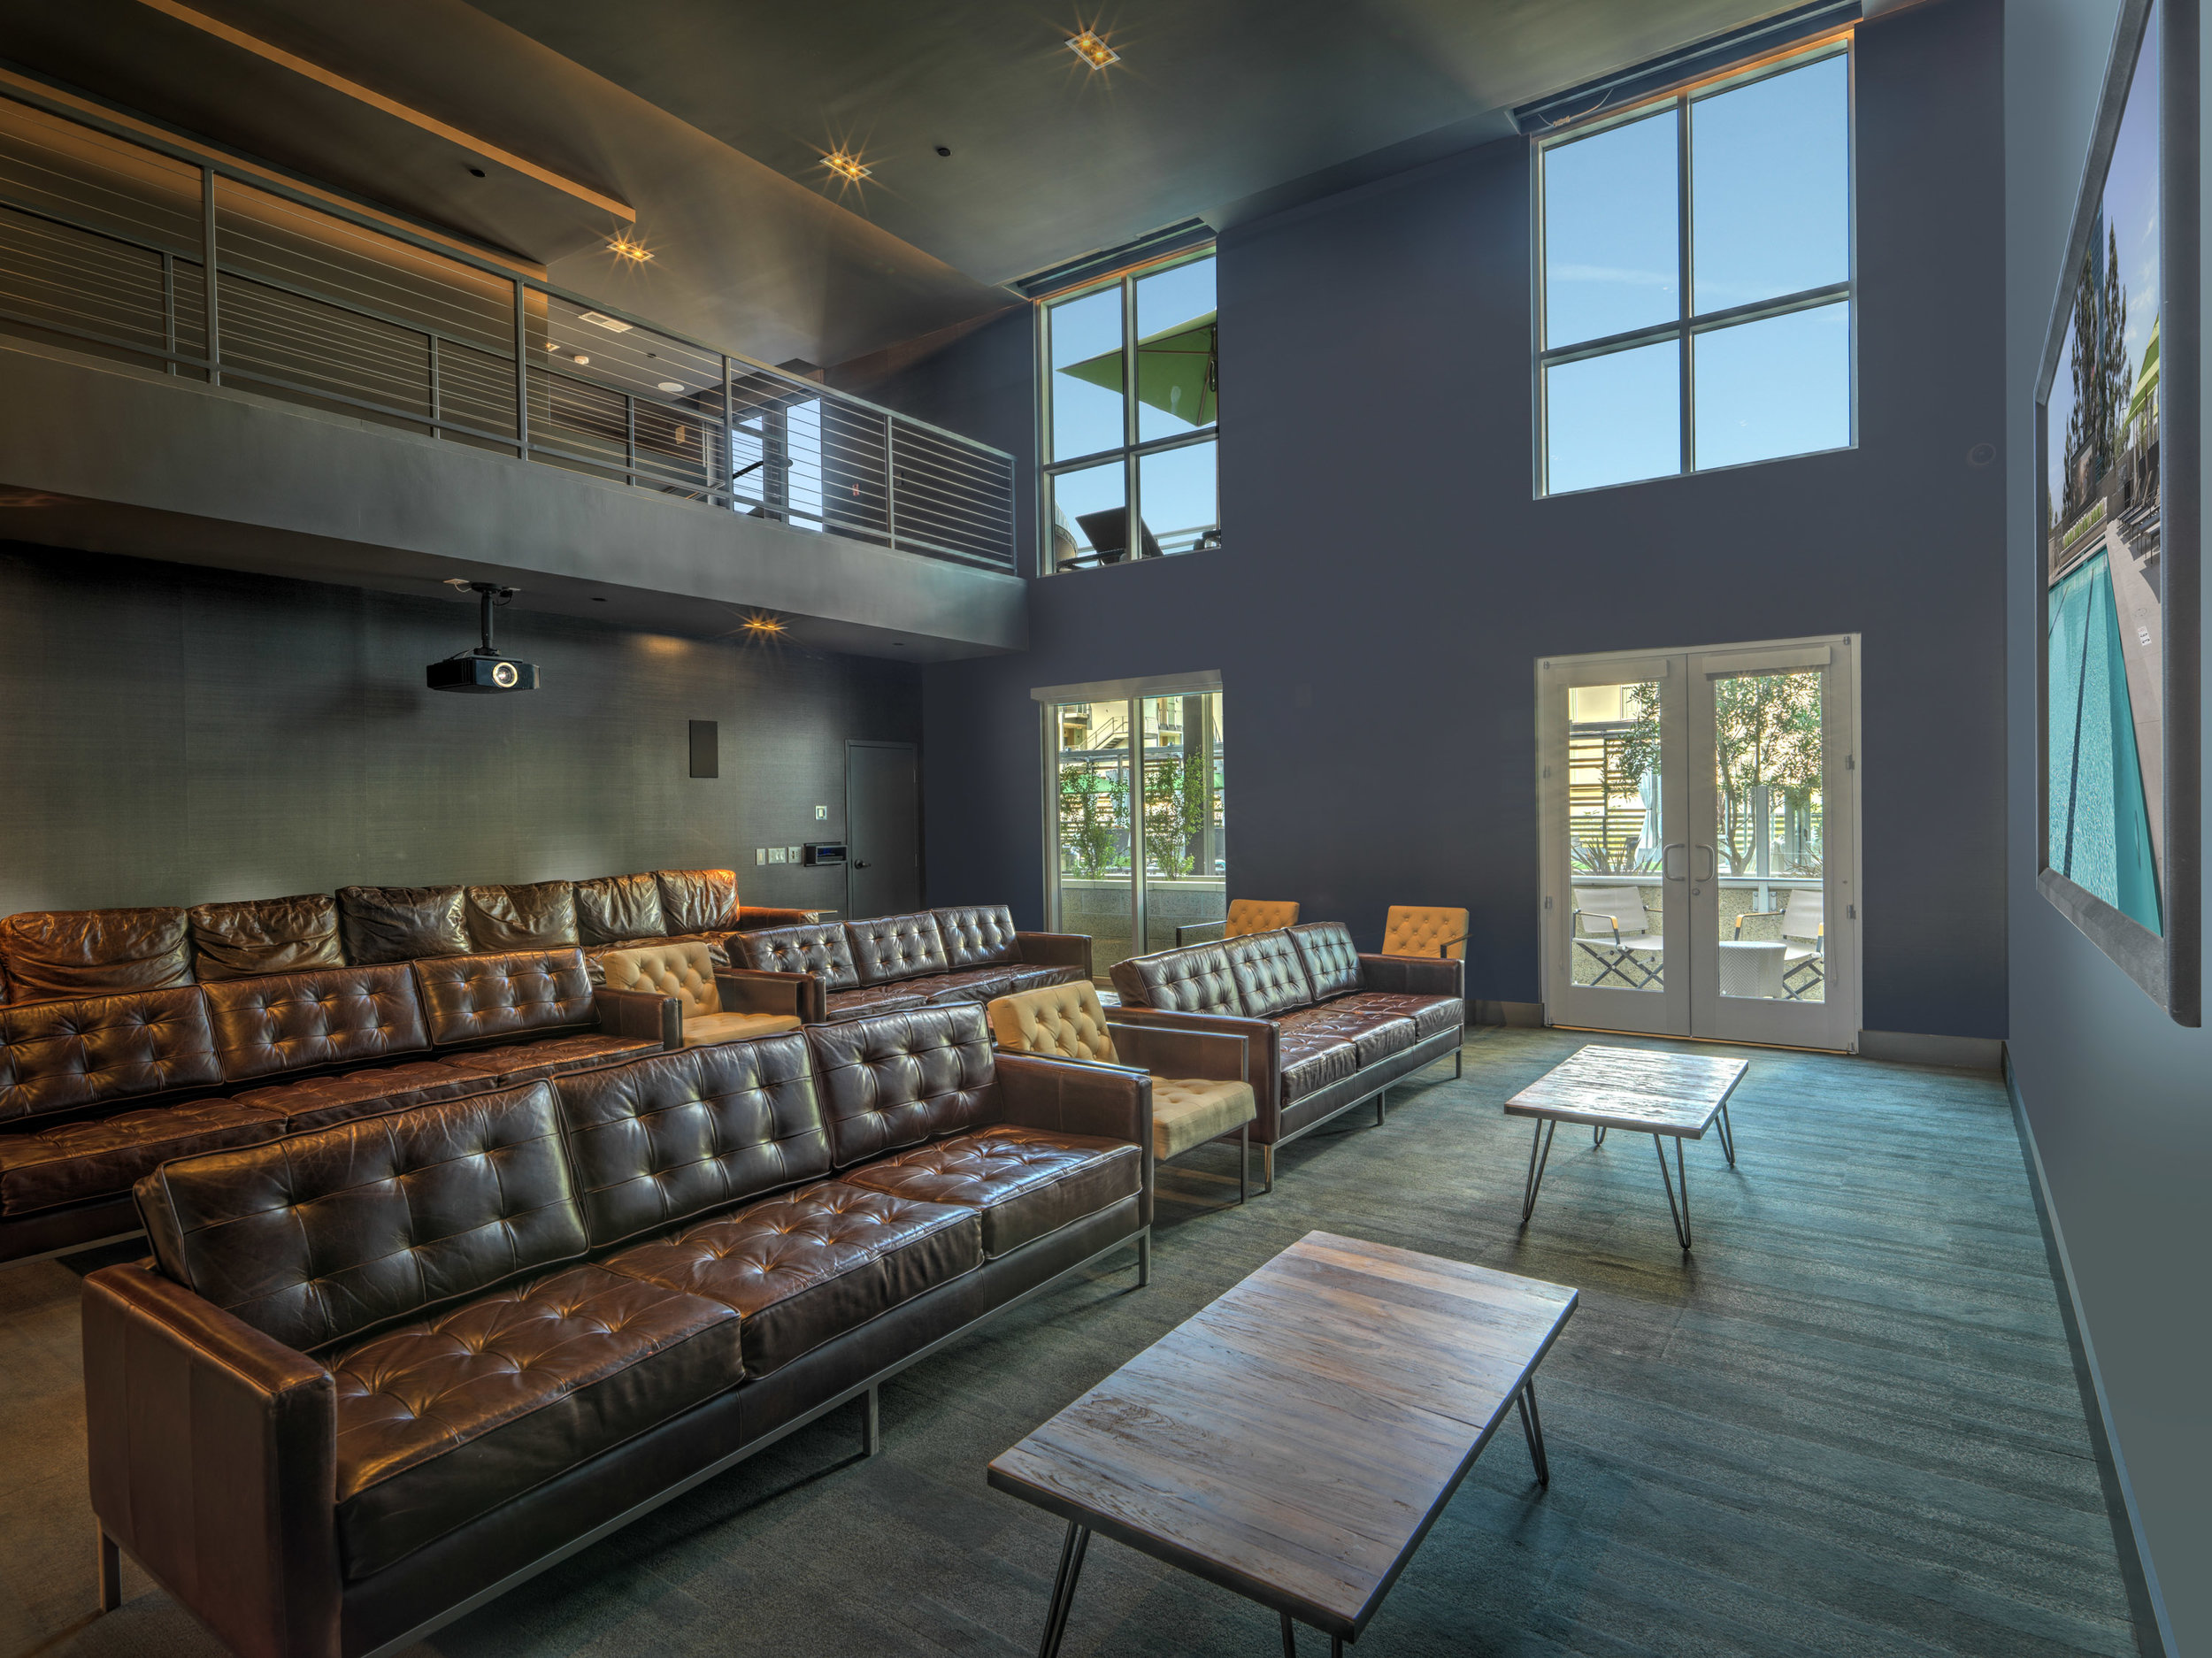 The-Camden-Apartments-Hollywood-California-Theater-Room.jpg